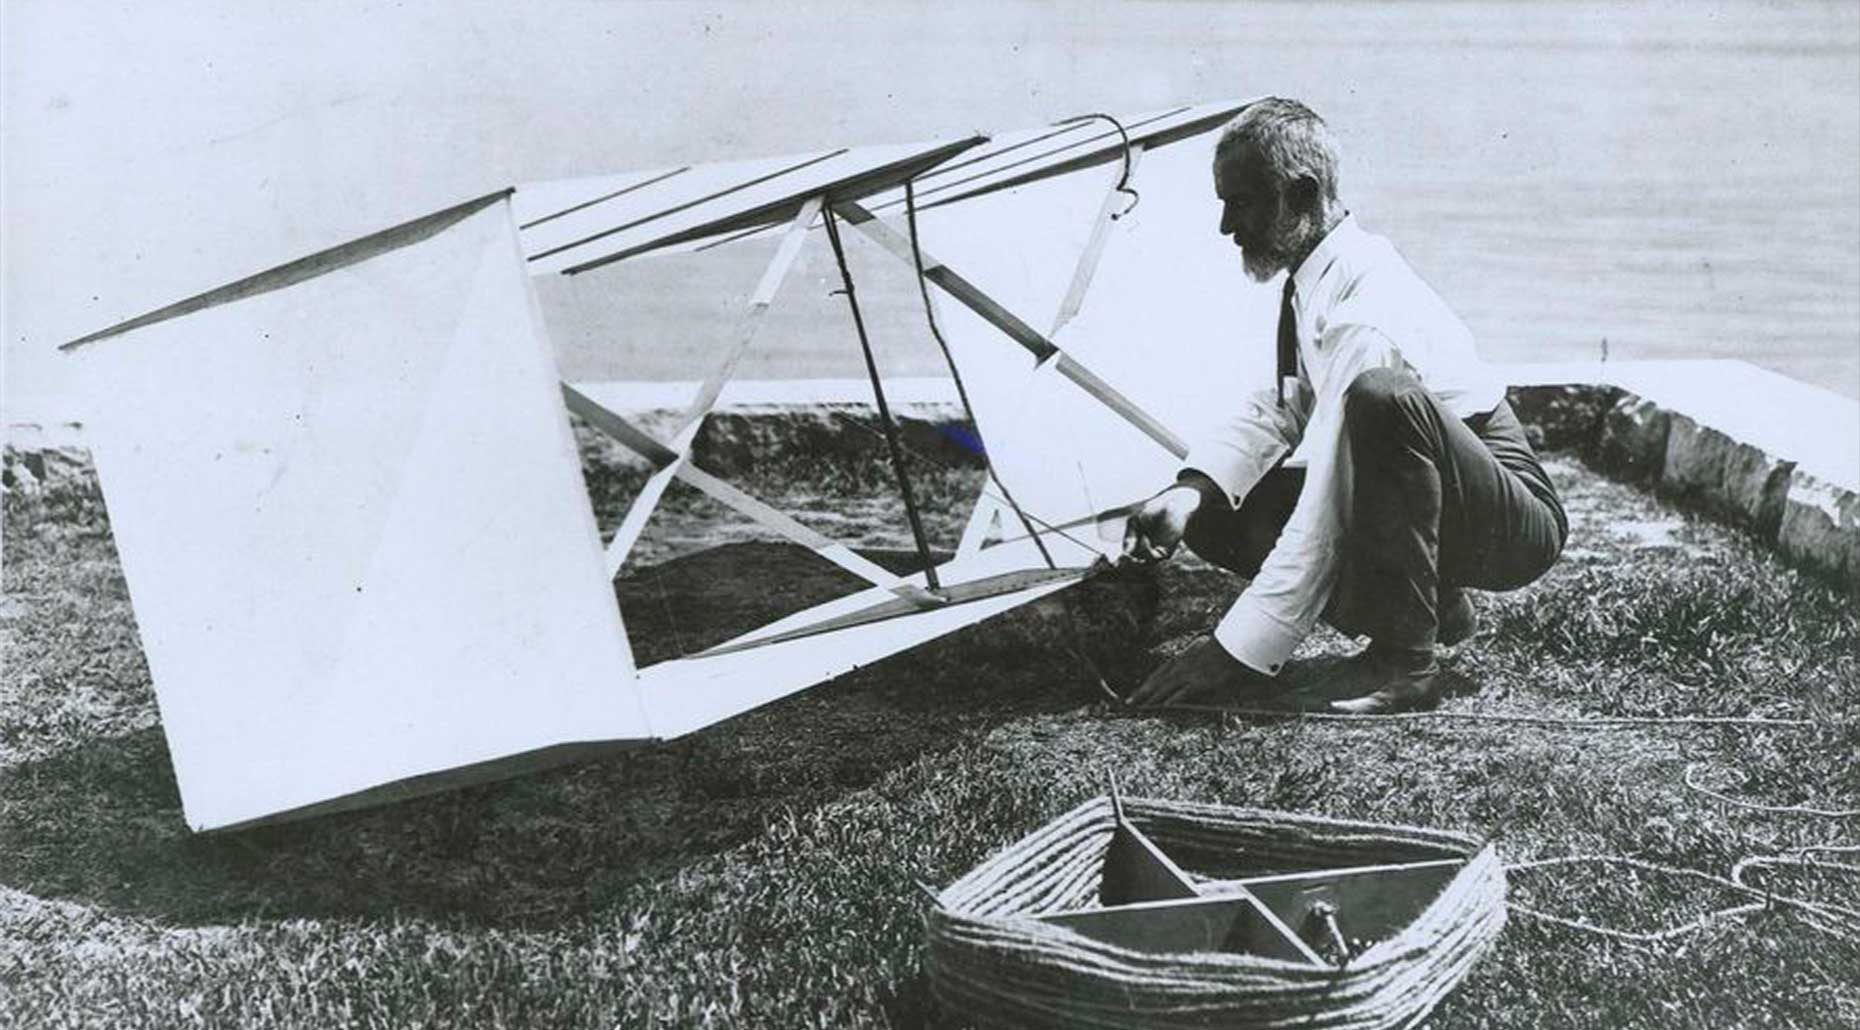 Photograph of Lawrence Hargrave kneeling beside box kite at Woollahra Point, print made circa 1977. Powerhouse Collection.